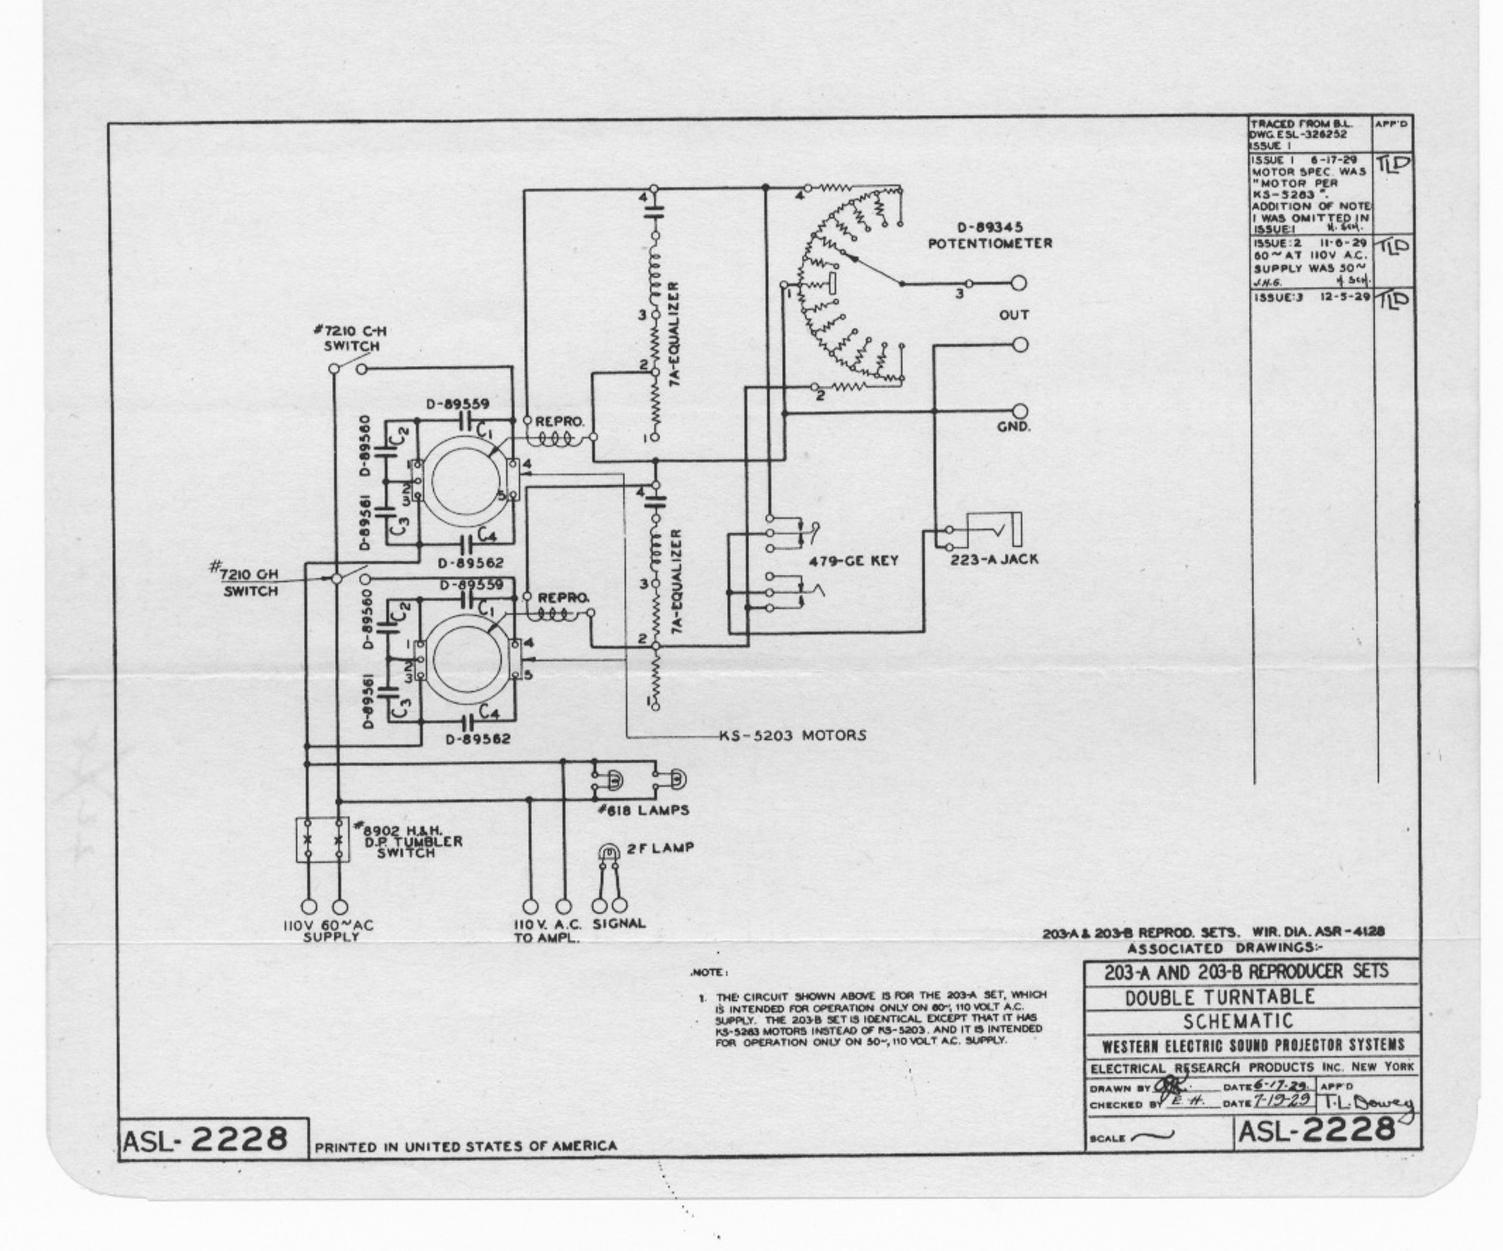 http://viktor-a-shapkin.narod.ru/olderfiles/3/1_DATA_203_double_turntable_schematic.jpg